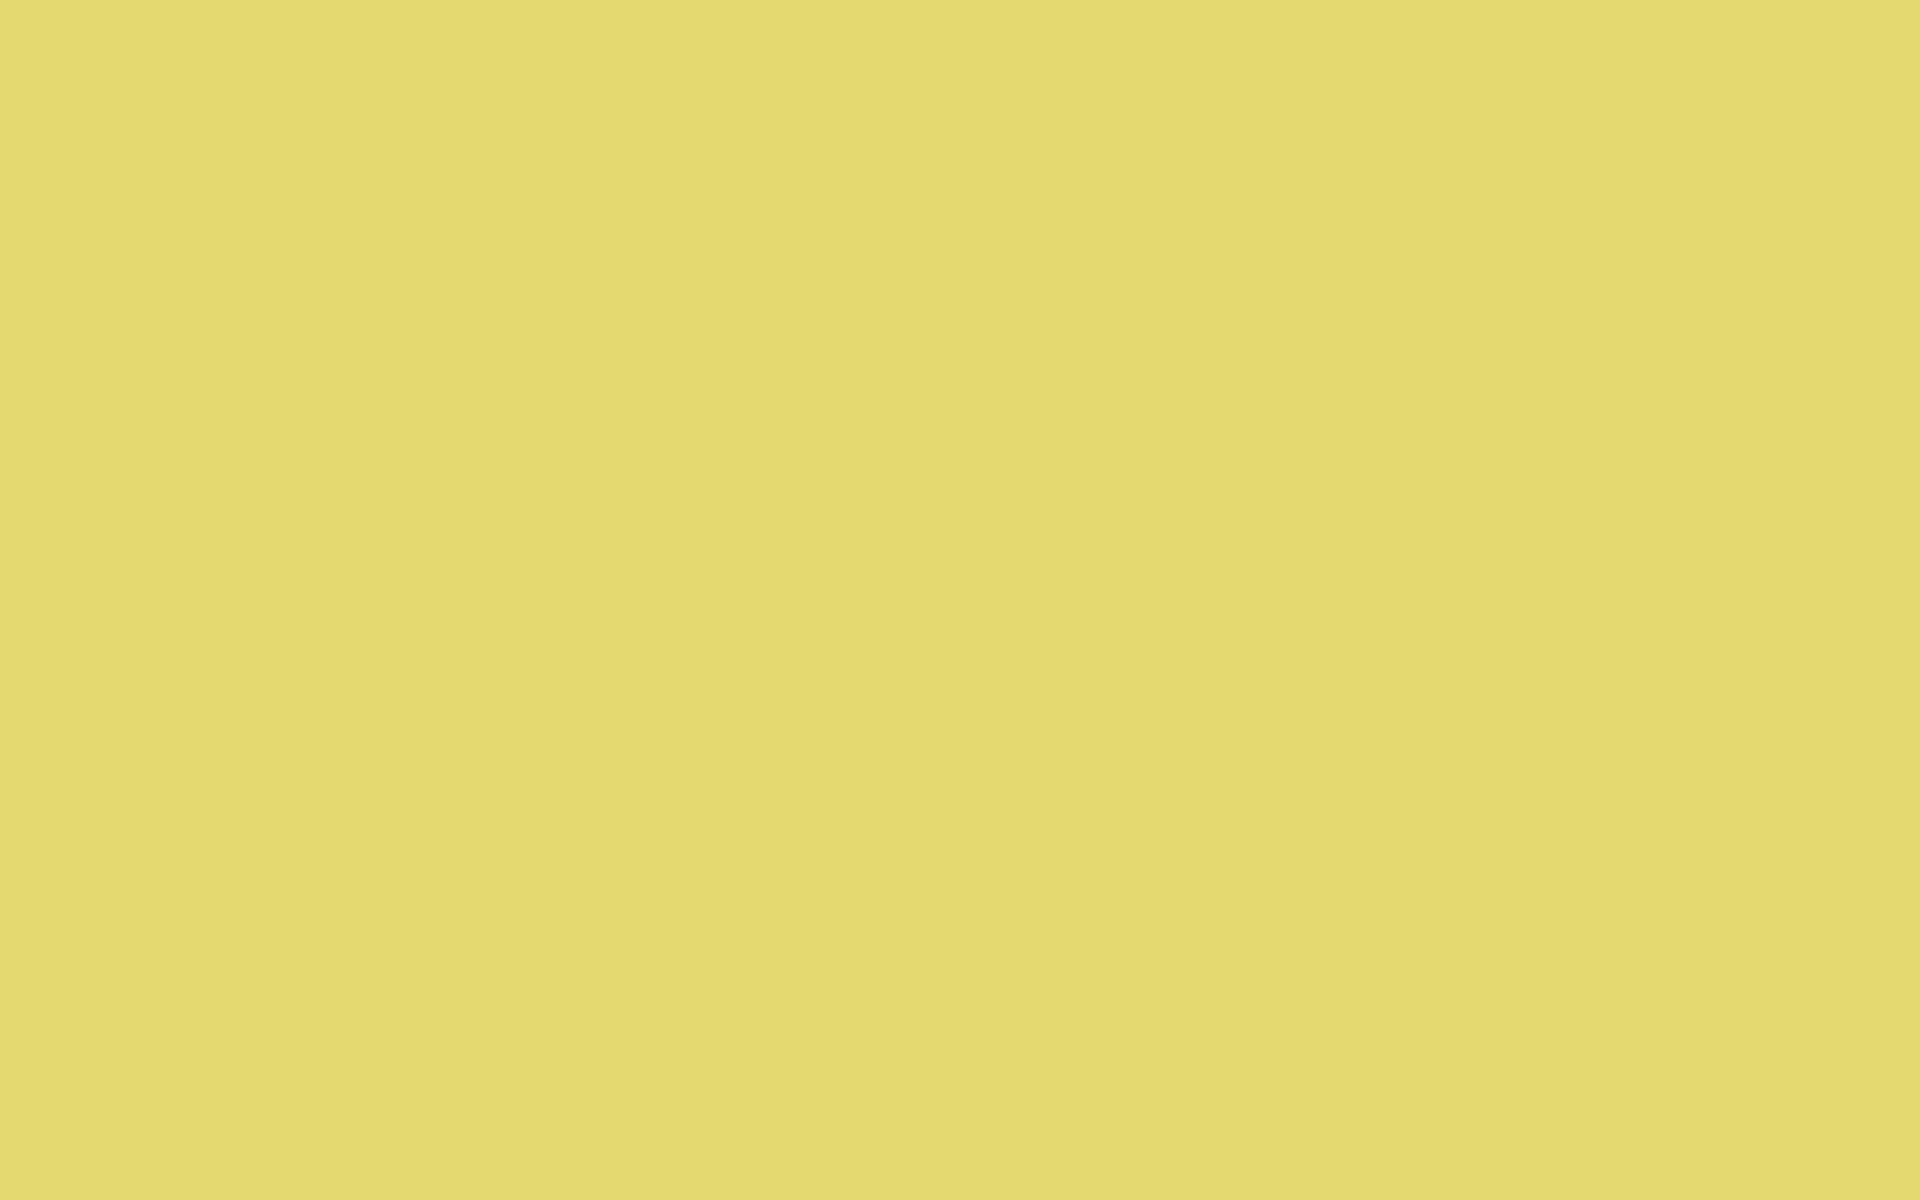 1920x1200 Straw Solid Color Background